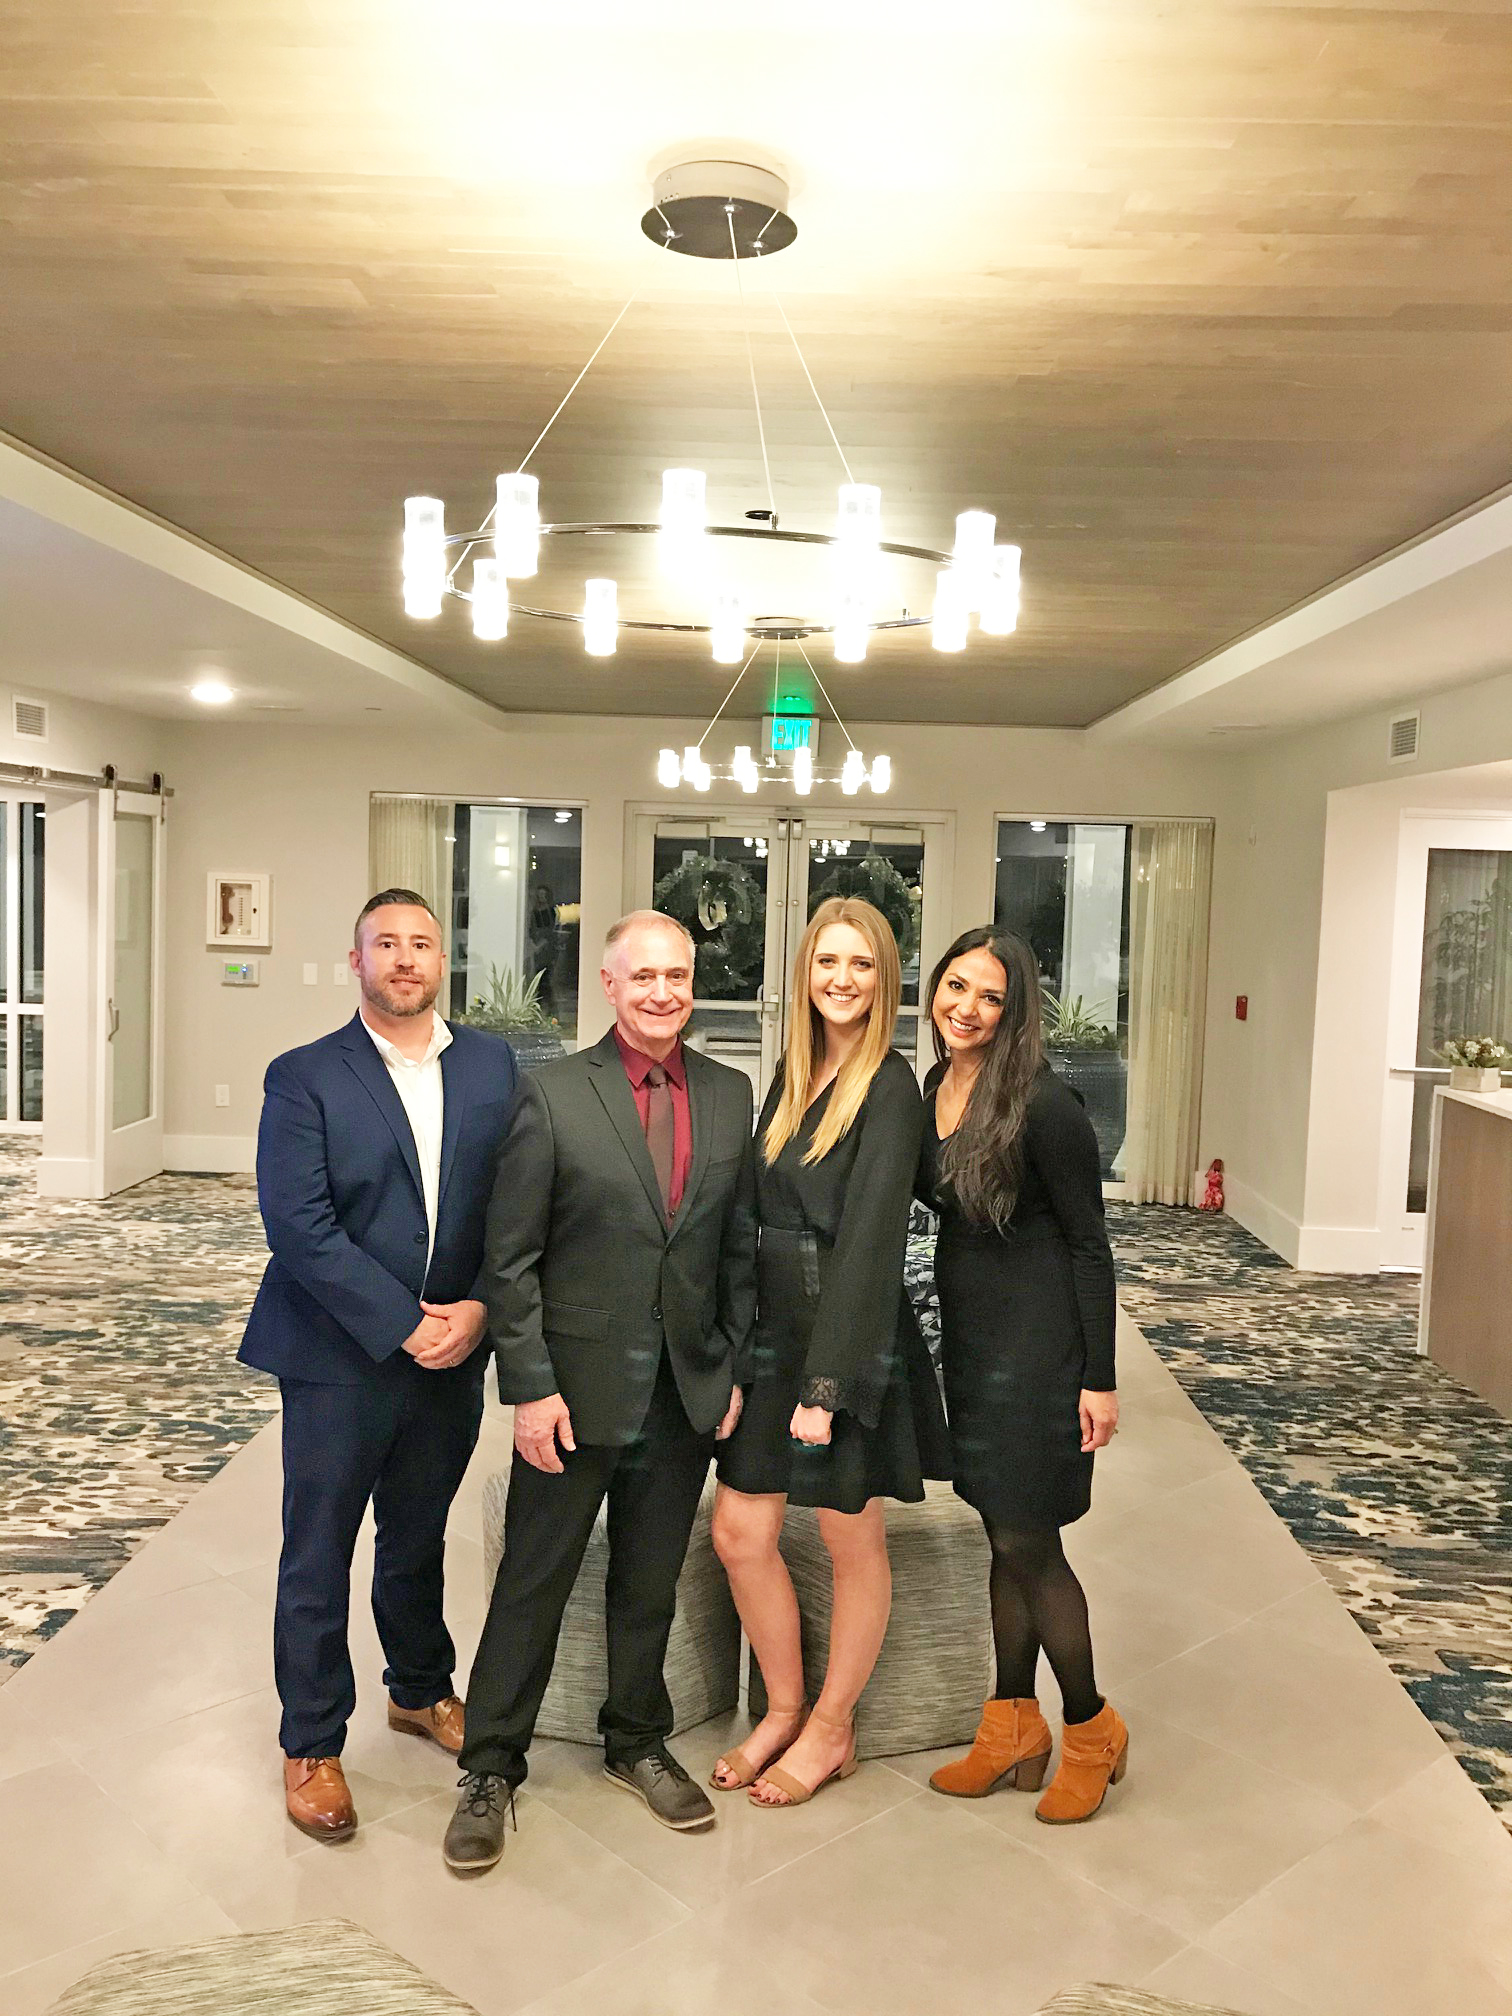 Overture Daniel Island, a new 55 and older apartment community on Daniel Island, hosted island residents and members of the business community last week as part of the Daniel Island Business Association's monthly Block Party. Pictured from left are Overture sales consultant John Ridge and manager Michael Lambrix; Riley Goldsmith, assistant manager; and Jillian Hildreth, sales consultant.